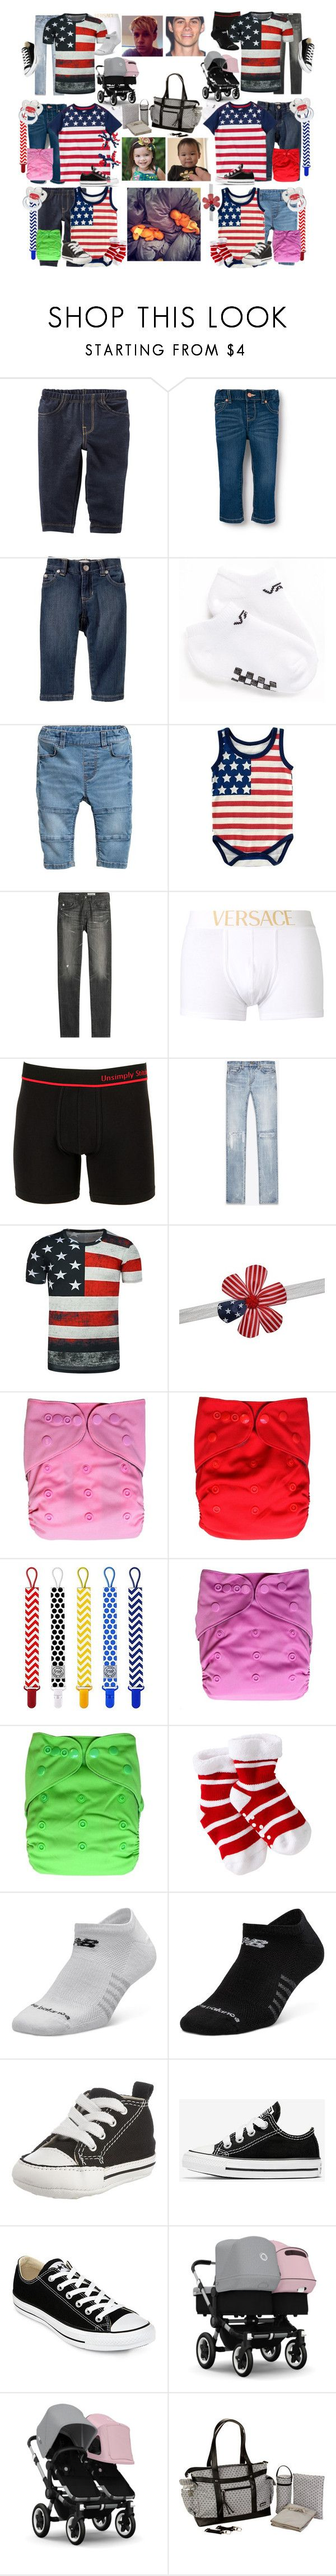 """""""The Horan-Stiles / 4th of July"""" by imaginaryfamilies ❤ liked on Polyvore featuring Old Navy, Vans, AG Adriano Goldschmied, Versace, Unsimply Stitched, Yves Saint Laurent, Transparente, New Balance, Converse and Kalencom"""